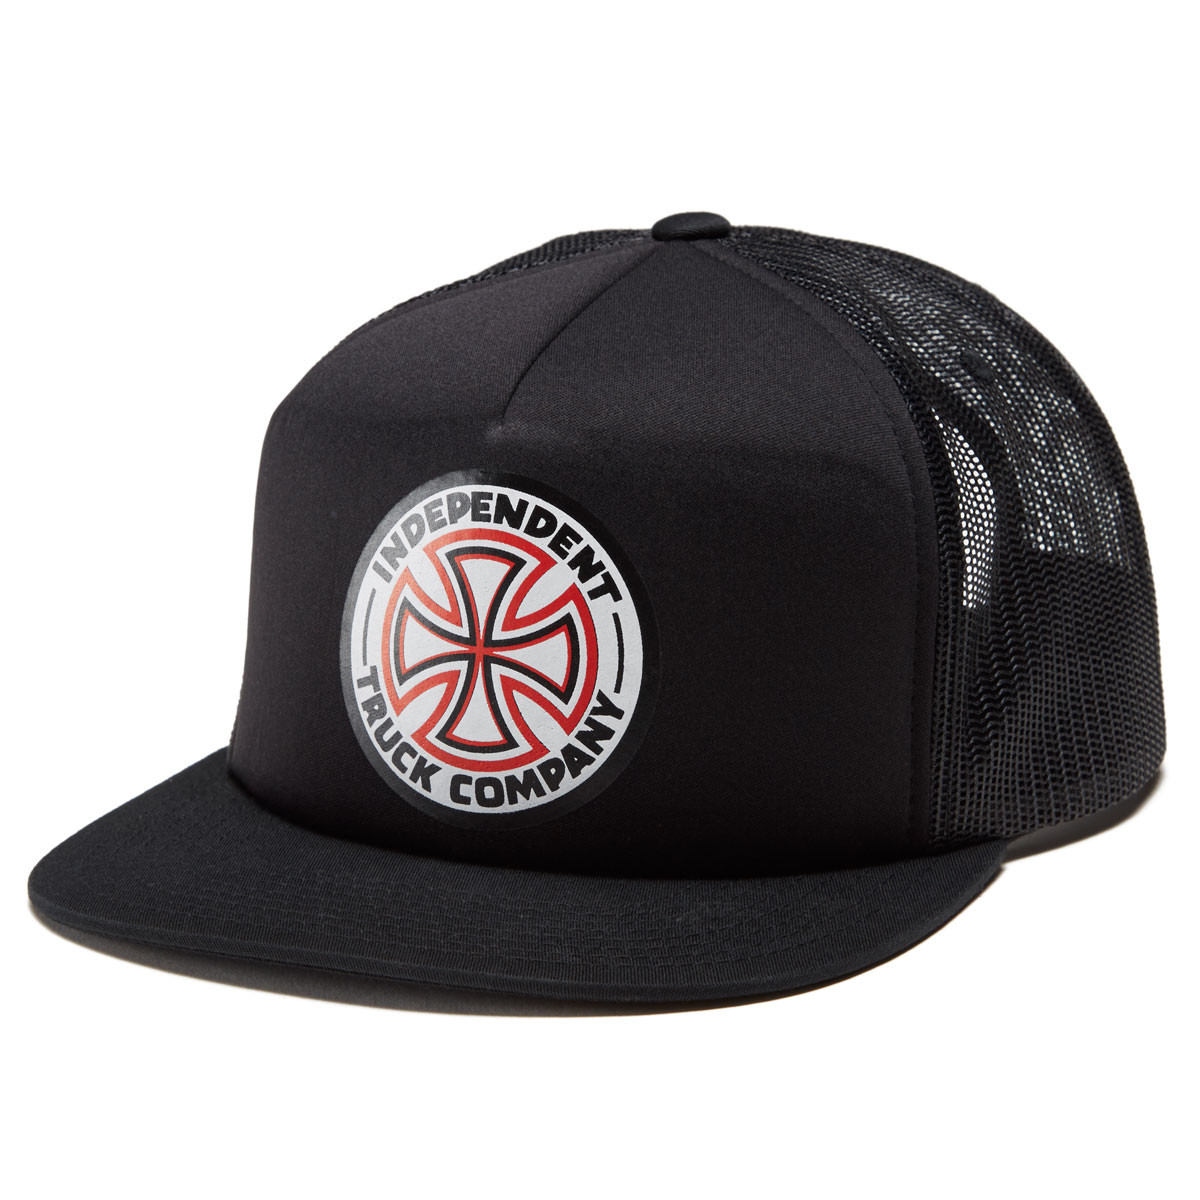 0869814de7e60 Independent Red White Cross High Profile Mesh Trucker Hat - Black